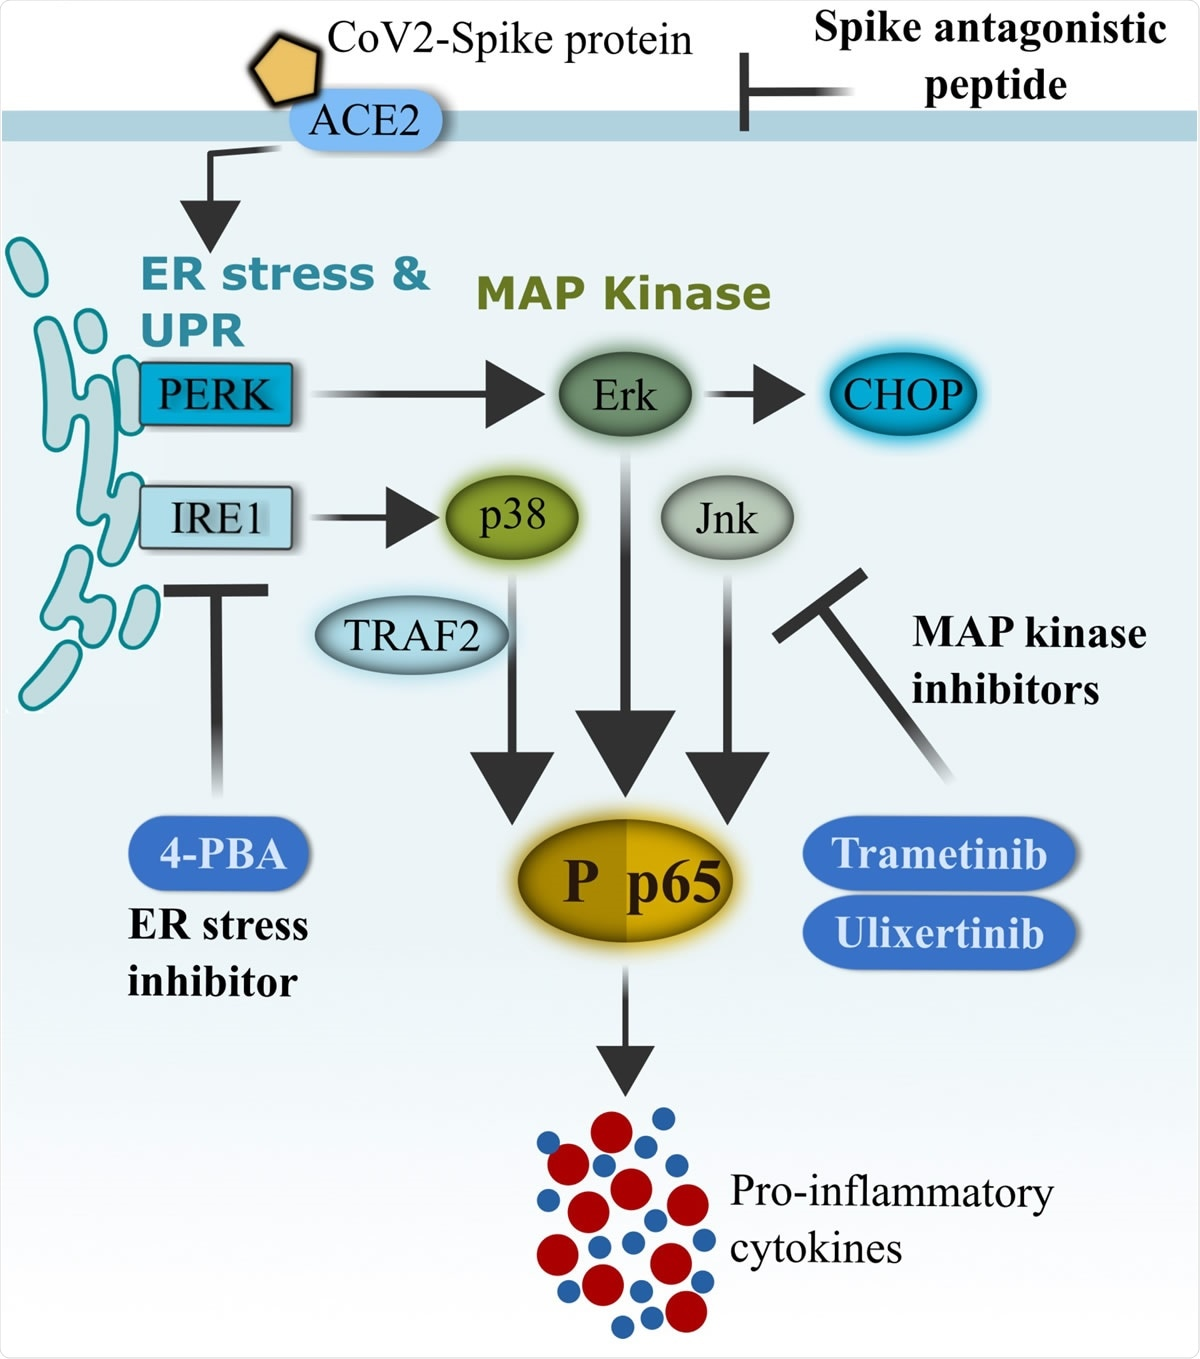 Schematics of CoV2-S1-mediated inflammation via ER-UPR and MAP kinase pathways. SARS-CoV-2 (CoV2) spike protein binds with ACE2 on the surface of human bronchial epithelial cells and rapidly facilitates the induction of ER stress and unfolded protein response (UPR). Activation of UPR (PERK and IRE1) promotes the activation of MAP kinases, and the two pathways synergistically drive the activation of NF-κB and production of pro-inflammatory cytokines. FDA-approved ER-UPR inhibitor 4-phenylburic acid (4- PBA) and MAP kinase inhibitors (trametinib and ulixertinib) suppressed CoV2-S1-induced ER stress and MAP kinase activities, resulting in reduced NF-κB-mediated expression of pro inflammatory cytokines.